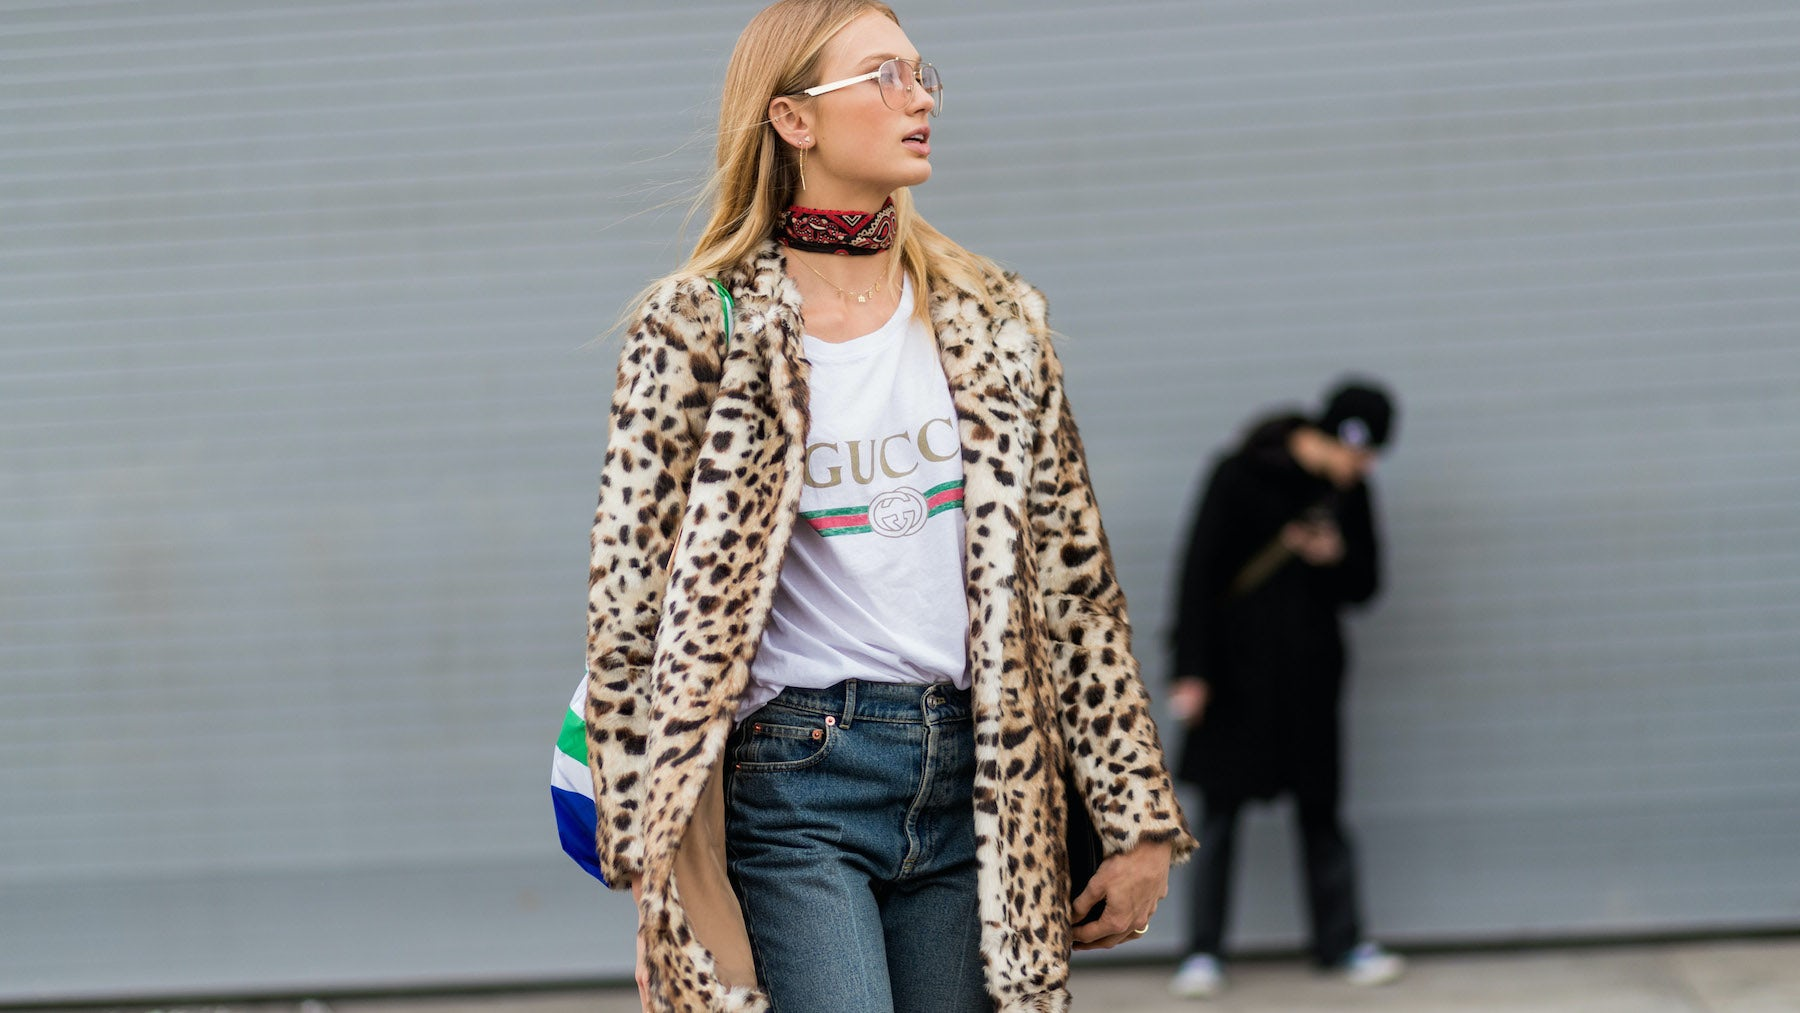 Romee Strijd wearing a Gucci logo T-shirt | Source: Getty Images